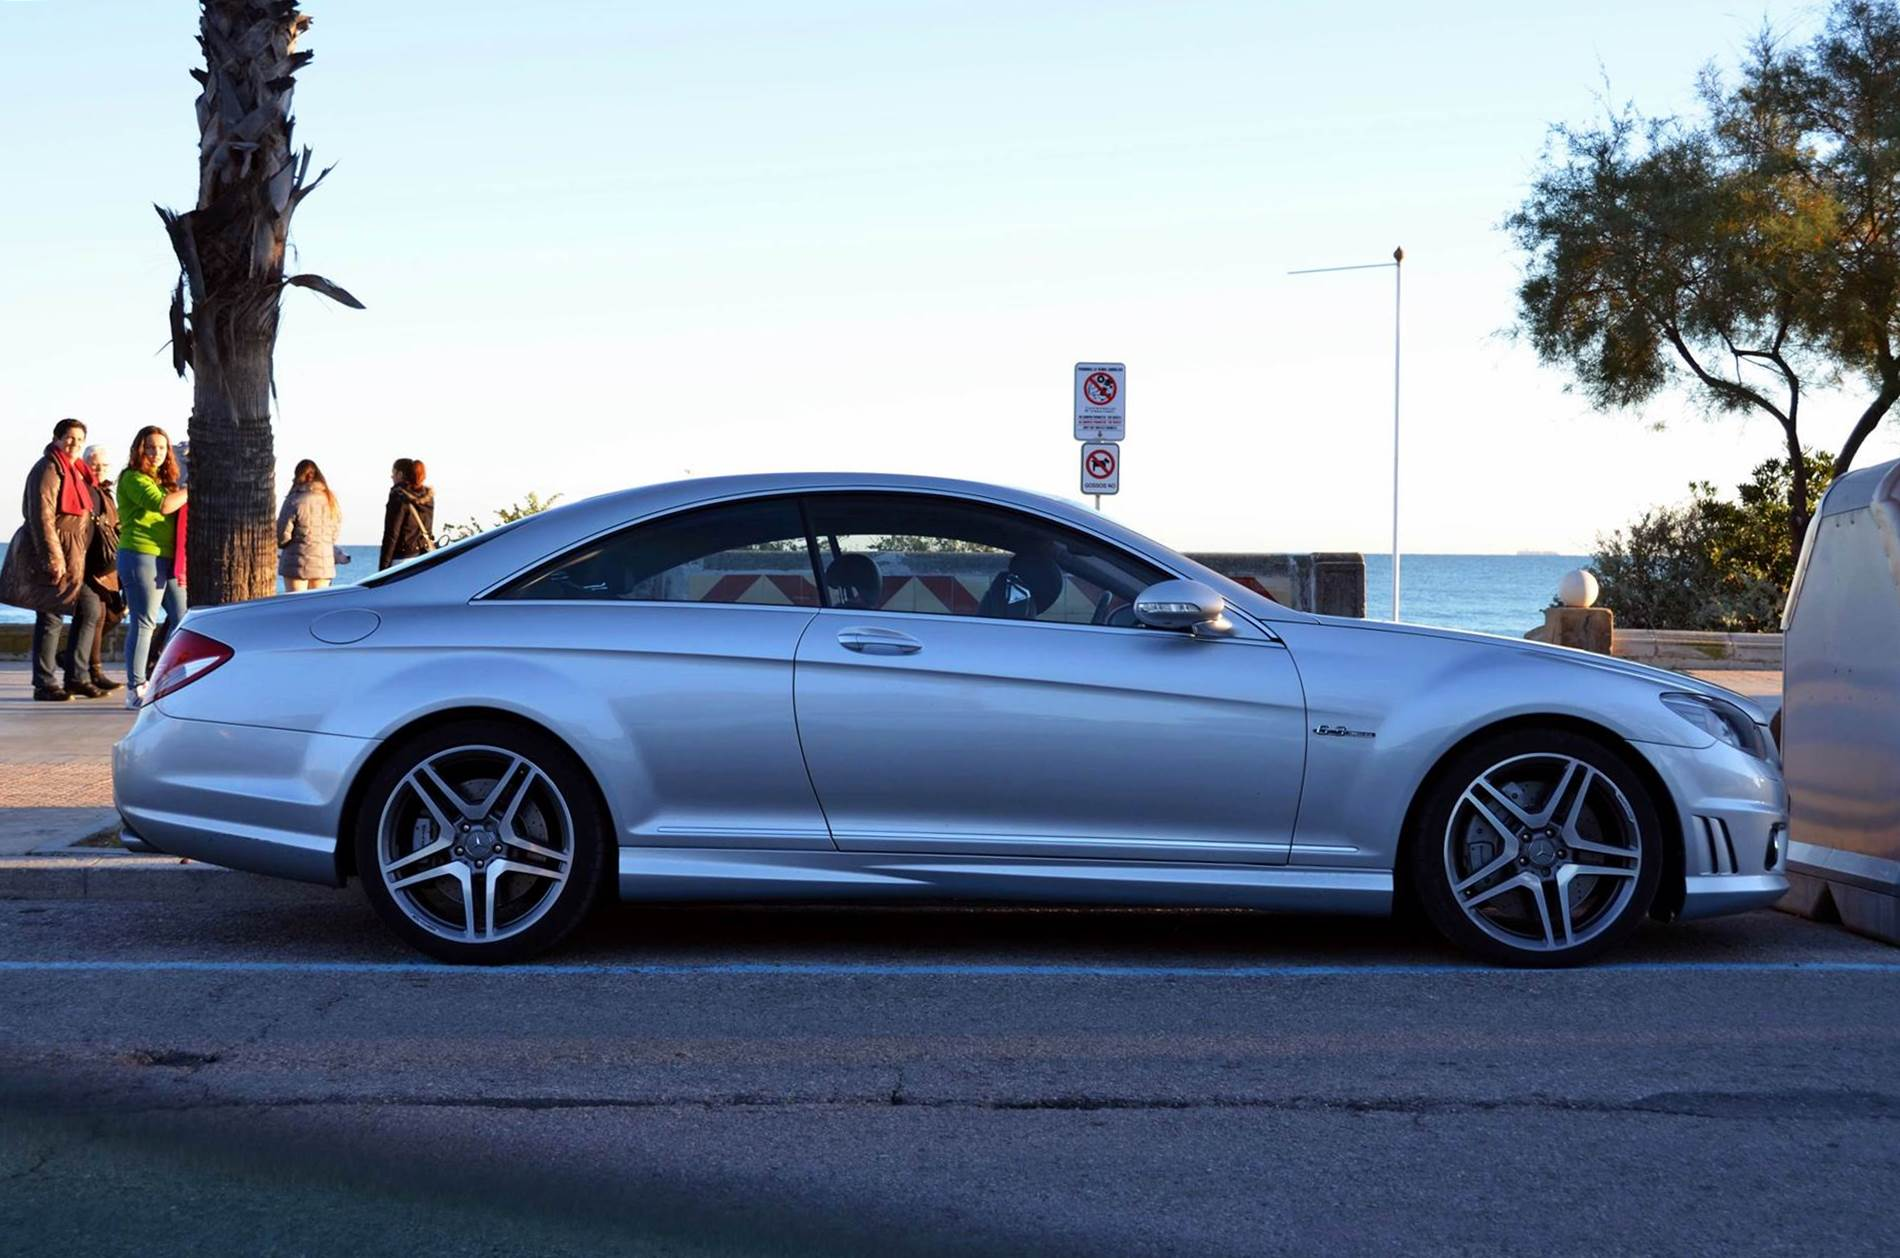 Mercedes benz cl 63 amg c216 supercars all day exotic for Mercedes benz luxury car